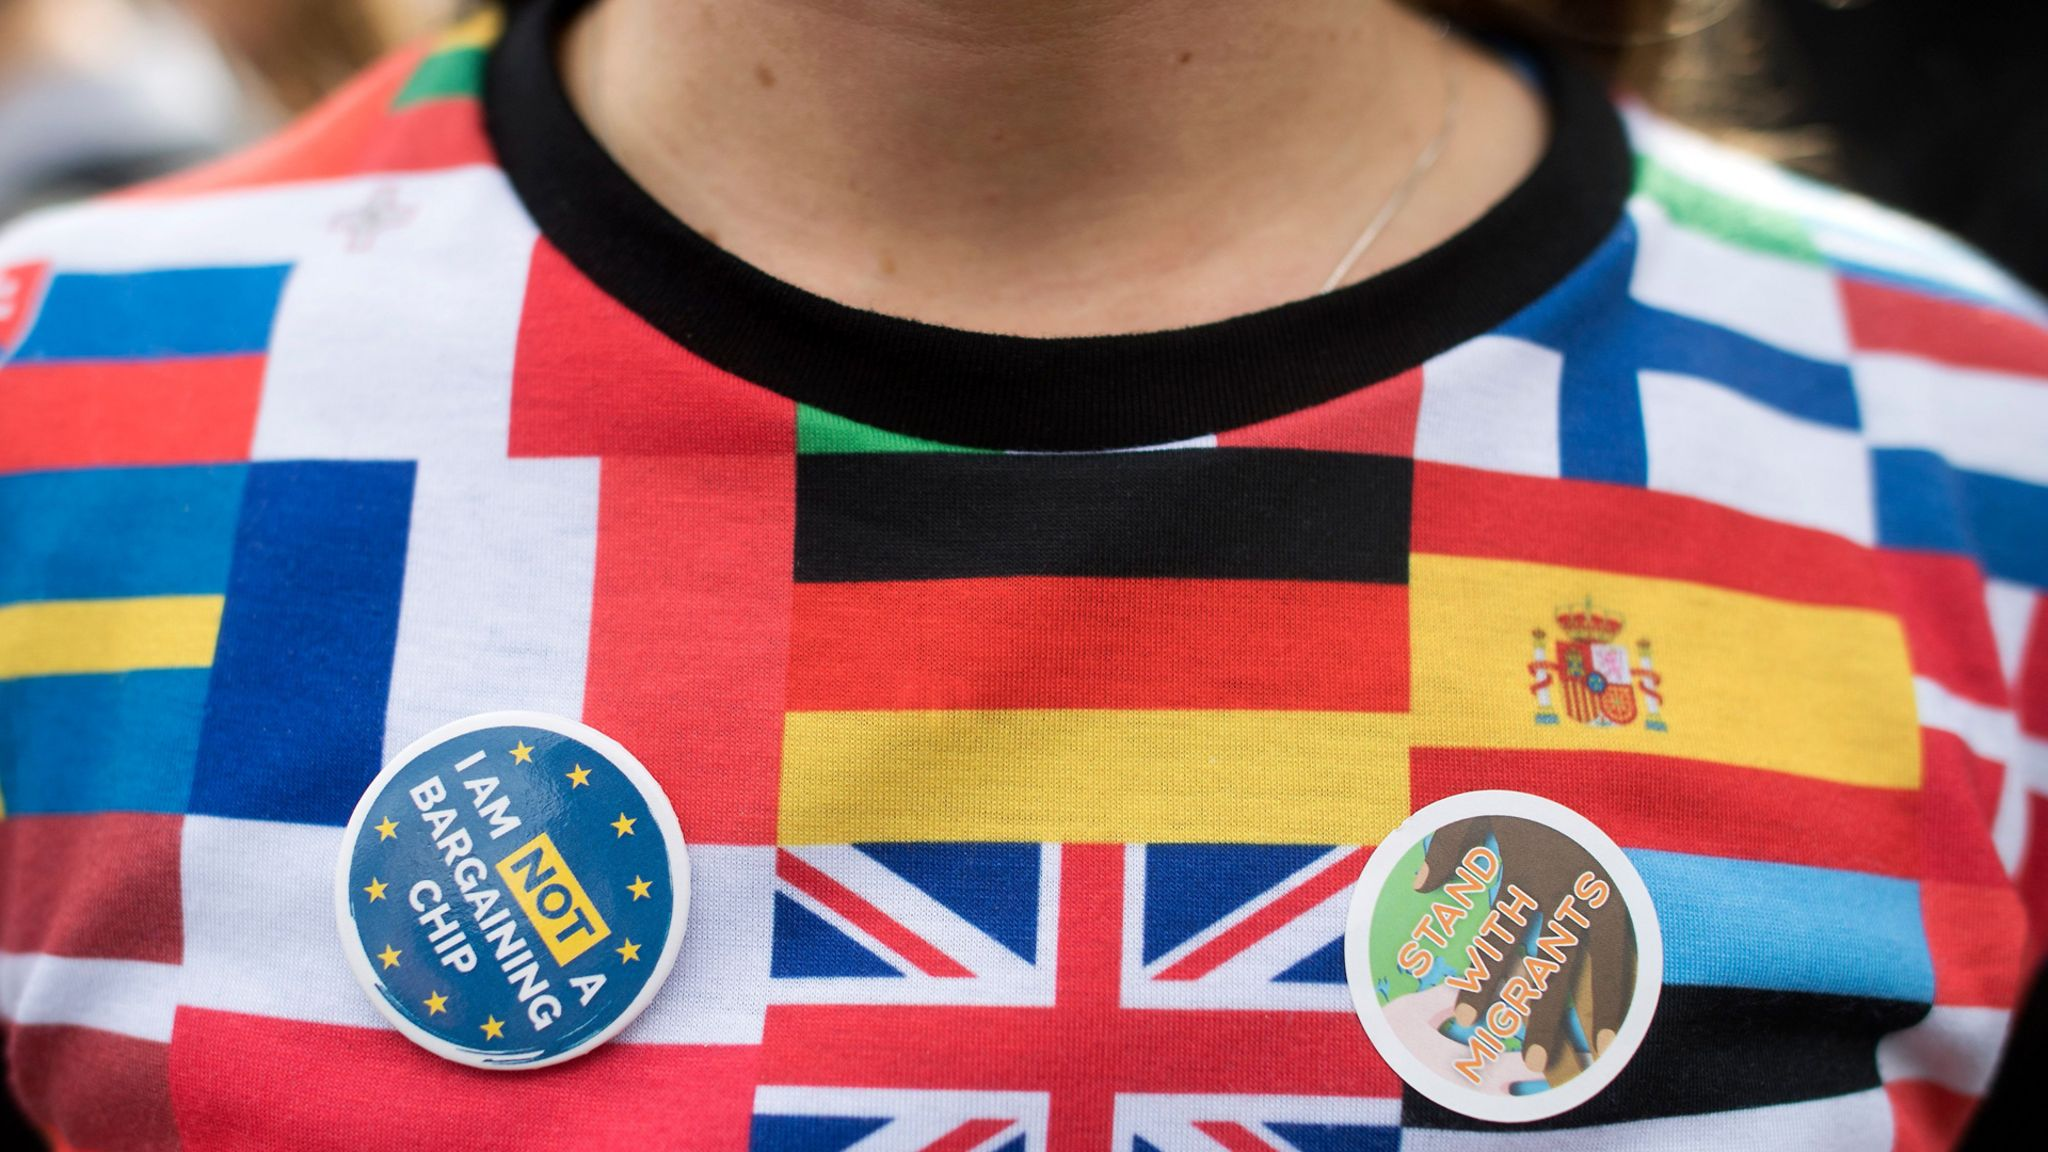 A Remain support in a flags jumper